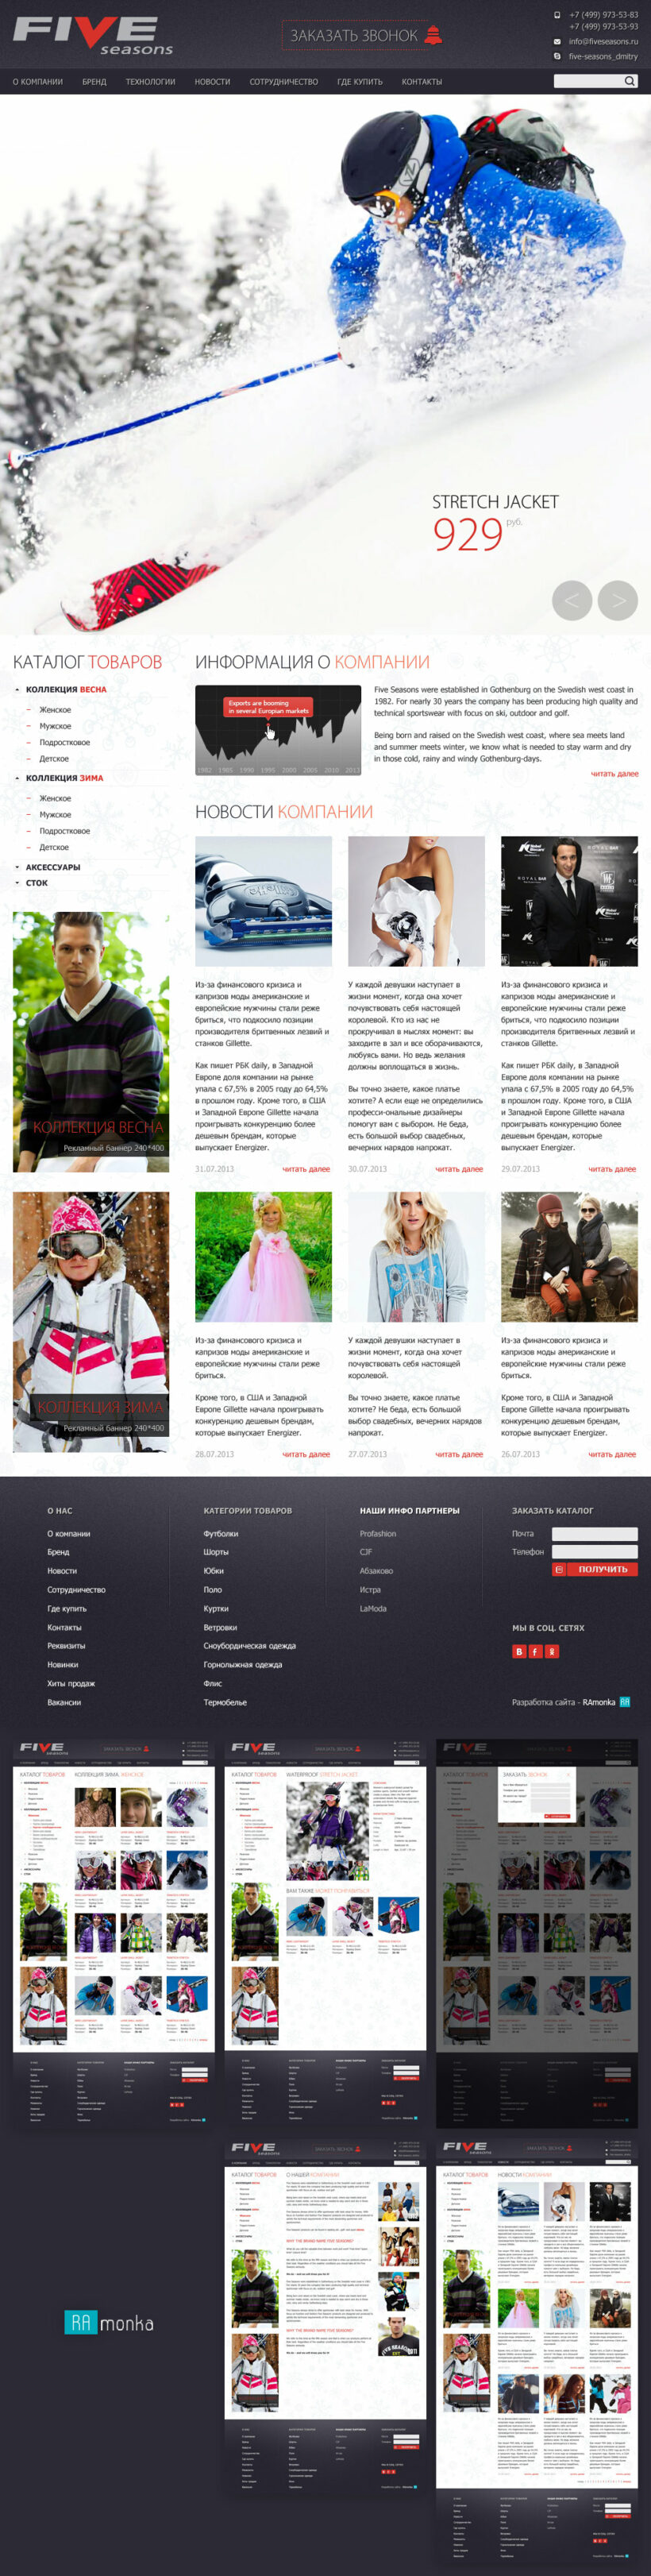 Web Design for Online Clothing Store FIVESEASONS